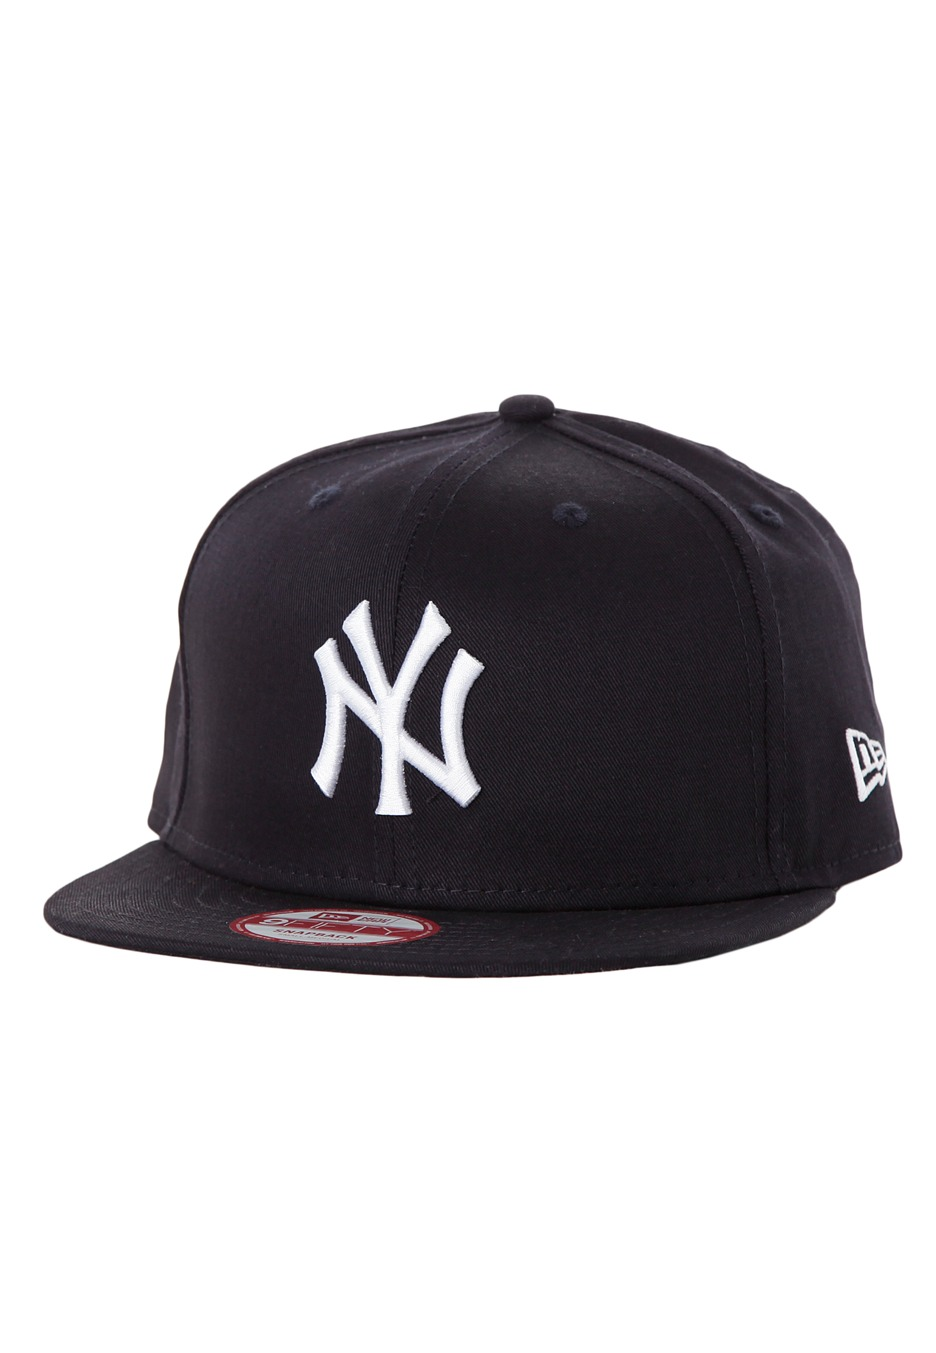 New Era - New York Yankees 9Fifty Snapback - Cap - Streetwear Shop -  Impericon.com UK 455c51dcee3